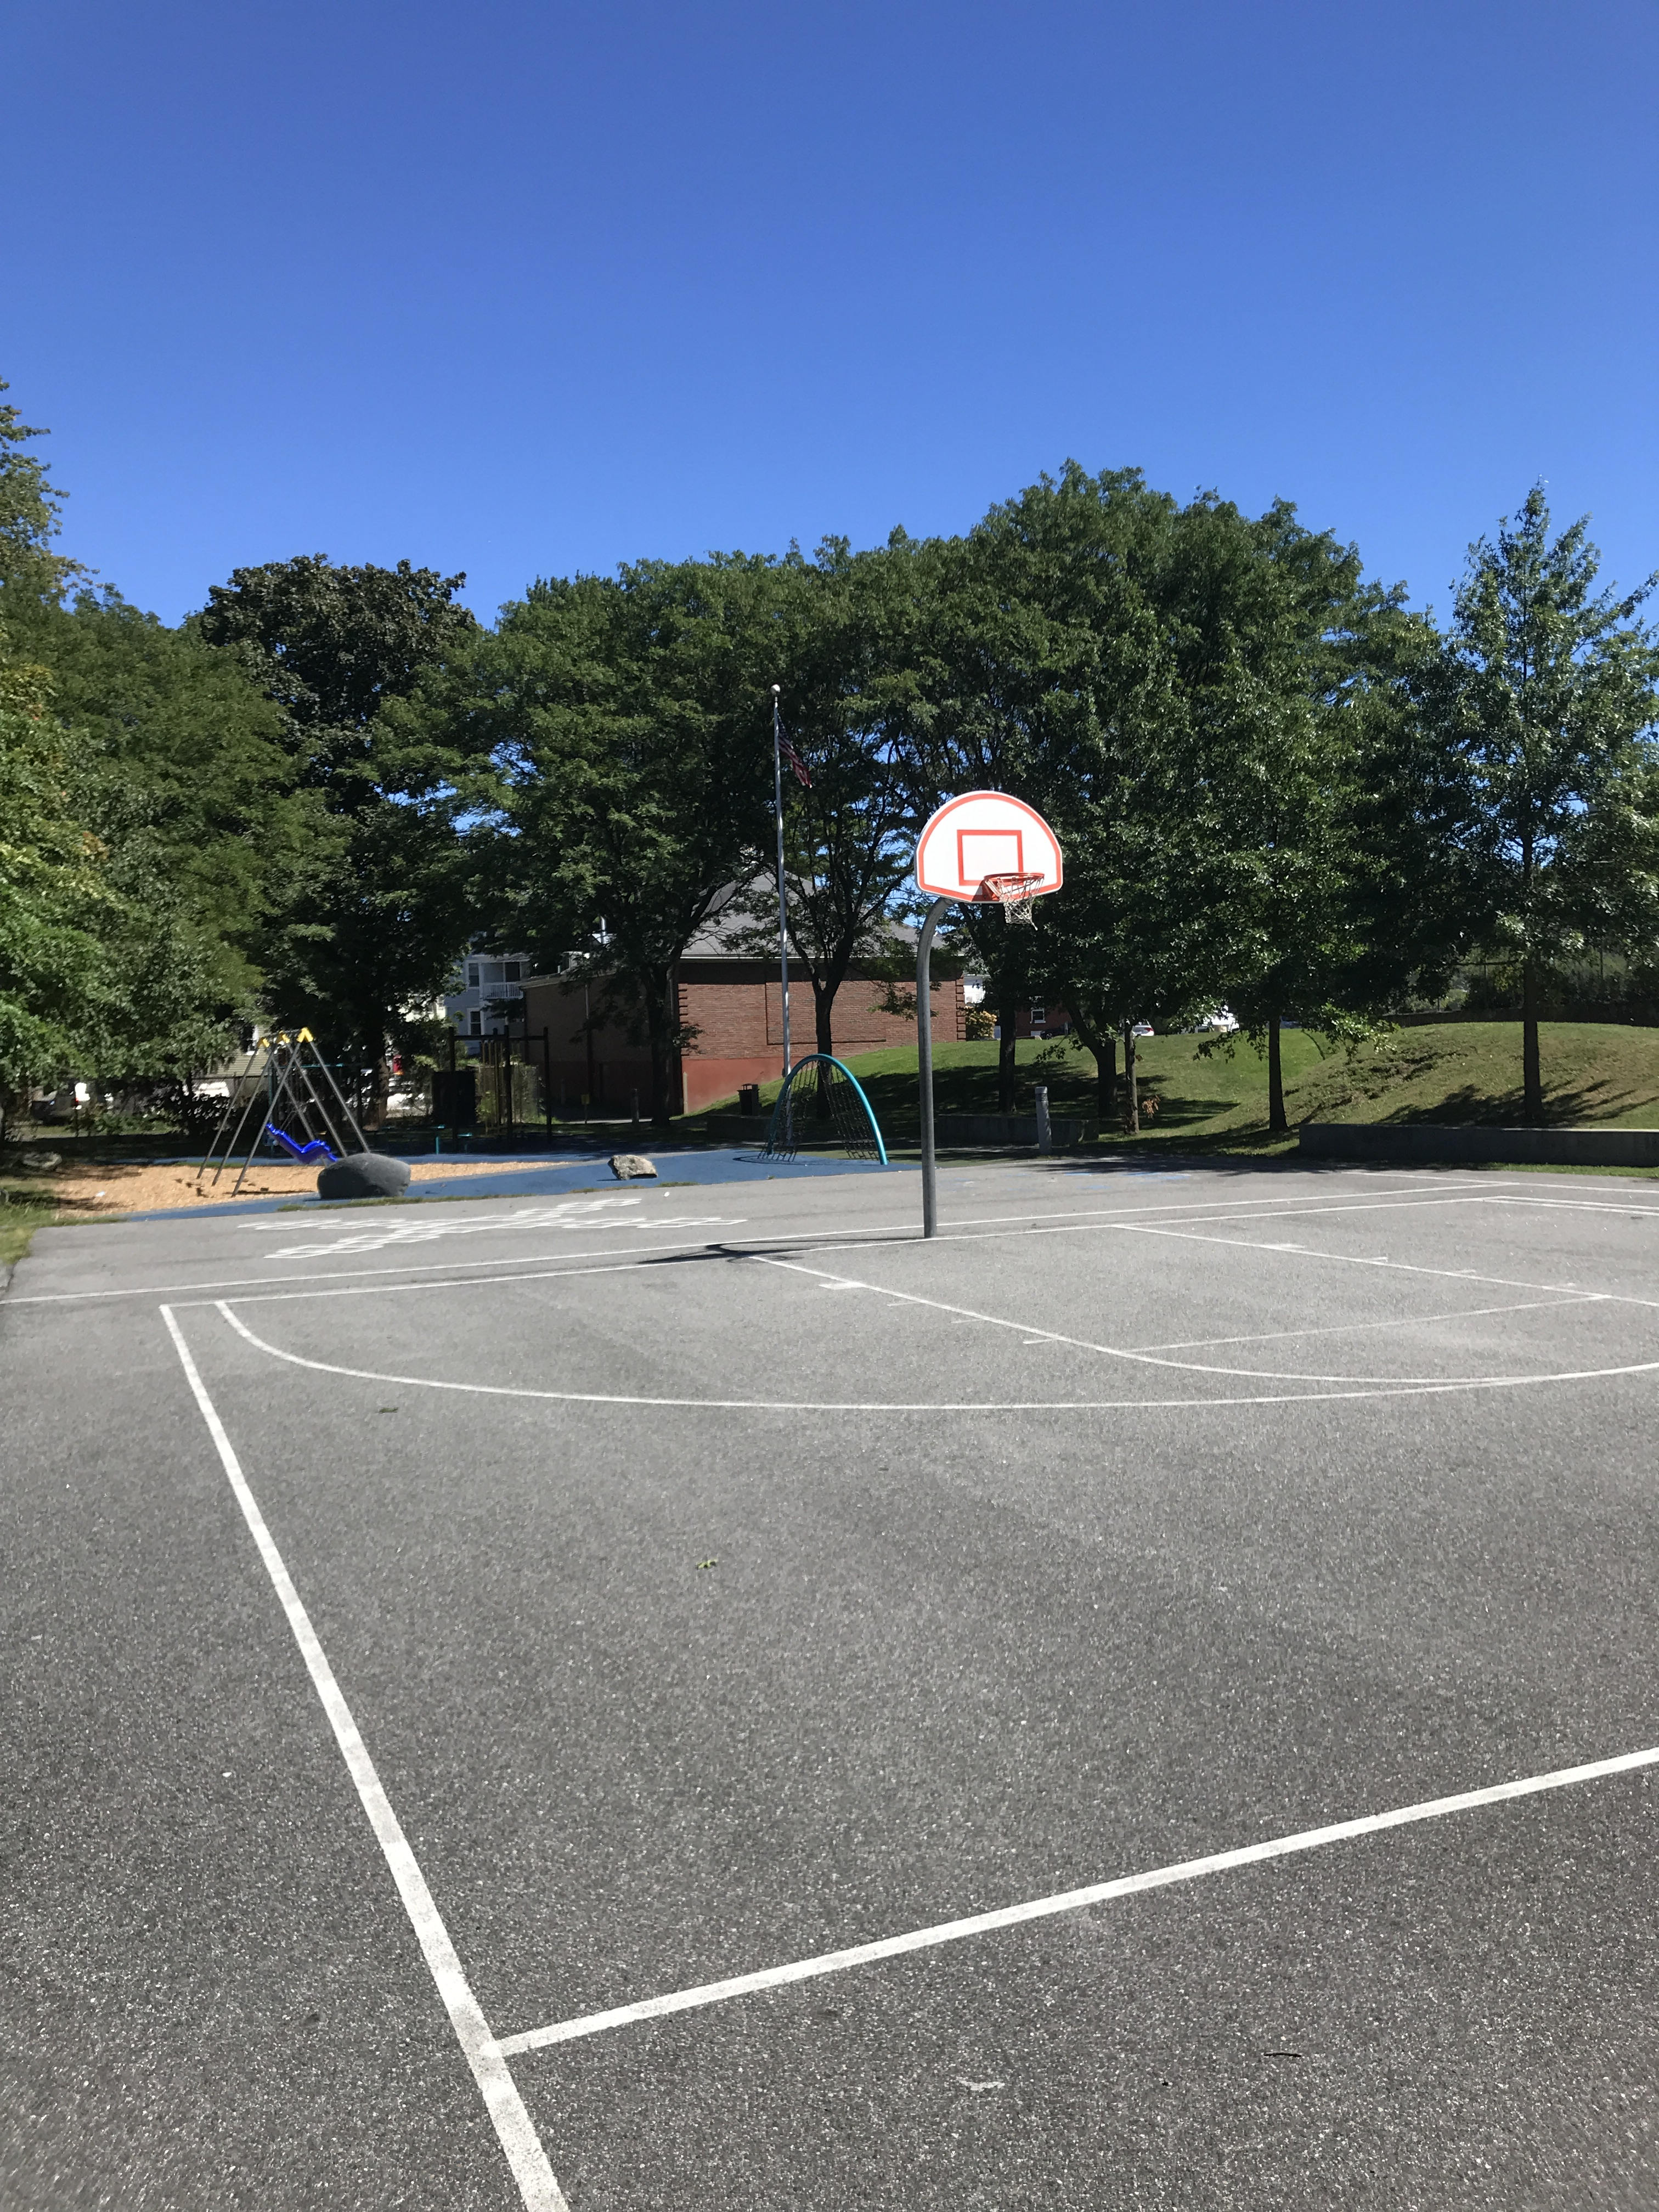 A view across a basketball court, with playground equipment in the background.